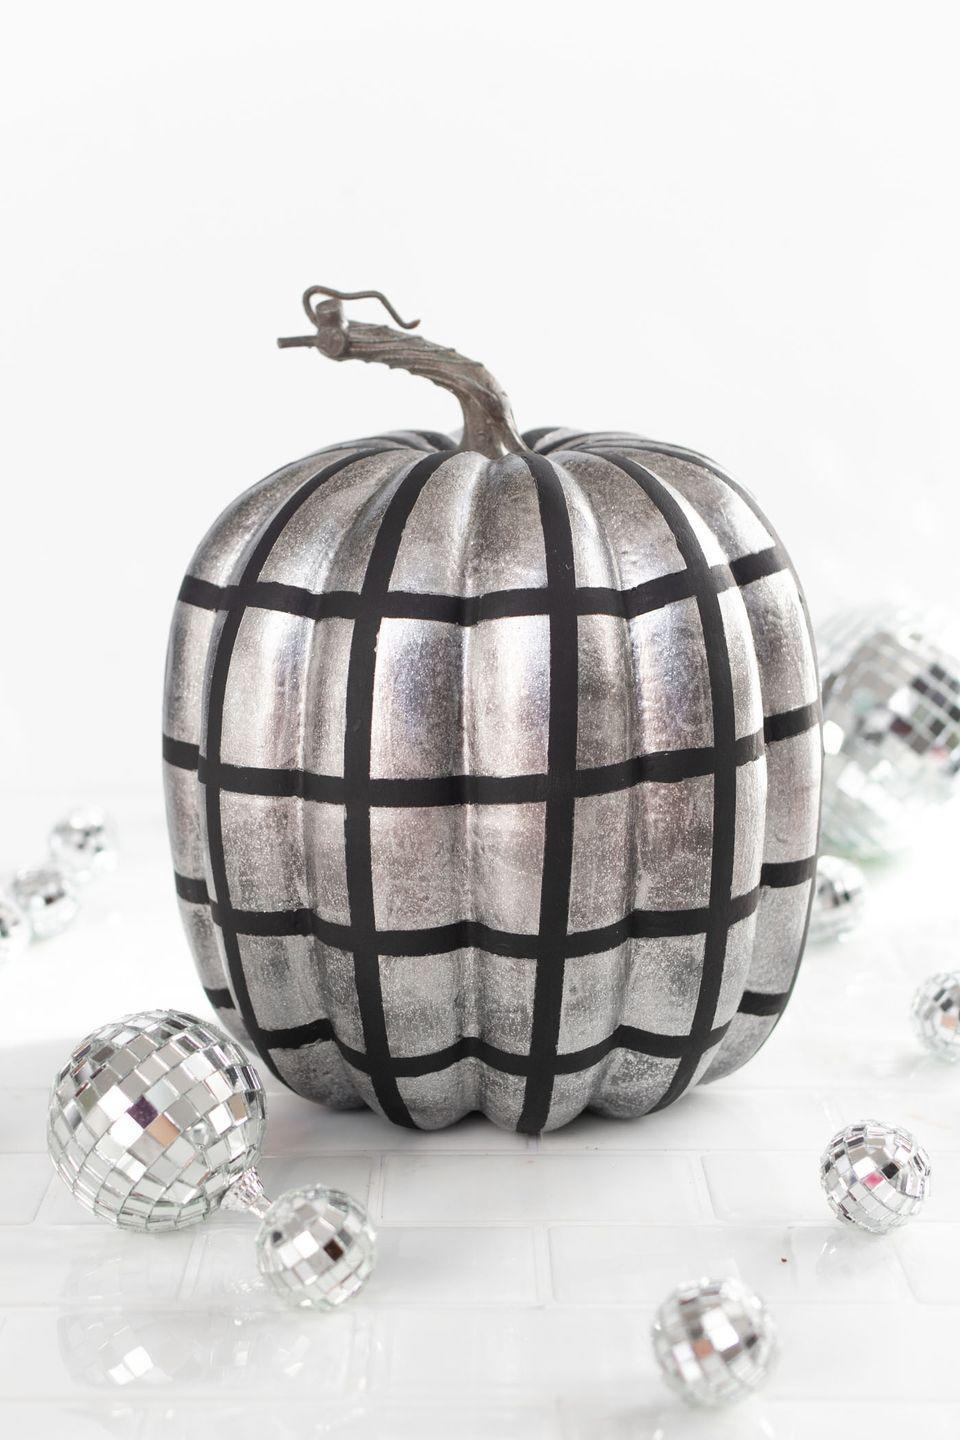 """<p>Stick this metallic pumpkin outside your door to show party-goers what they can expect when they step inside: music, dancing, and tons of sparkle. </p><p><em><a href=""""https://www.clubcrafted.com/disco-ball-pumpkin/"""" rel=""""nofollow noopener"""" target=""""_blank"""" data-ylk=""""slk:Get the tutorial at Club Crafted »"""" class=""""link rapid-noclick-resp"""">Get the tutorial at Club Crafted »</a></em></p>"""